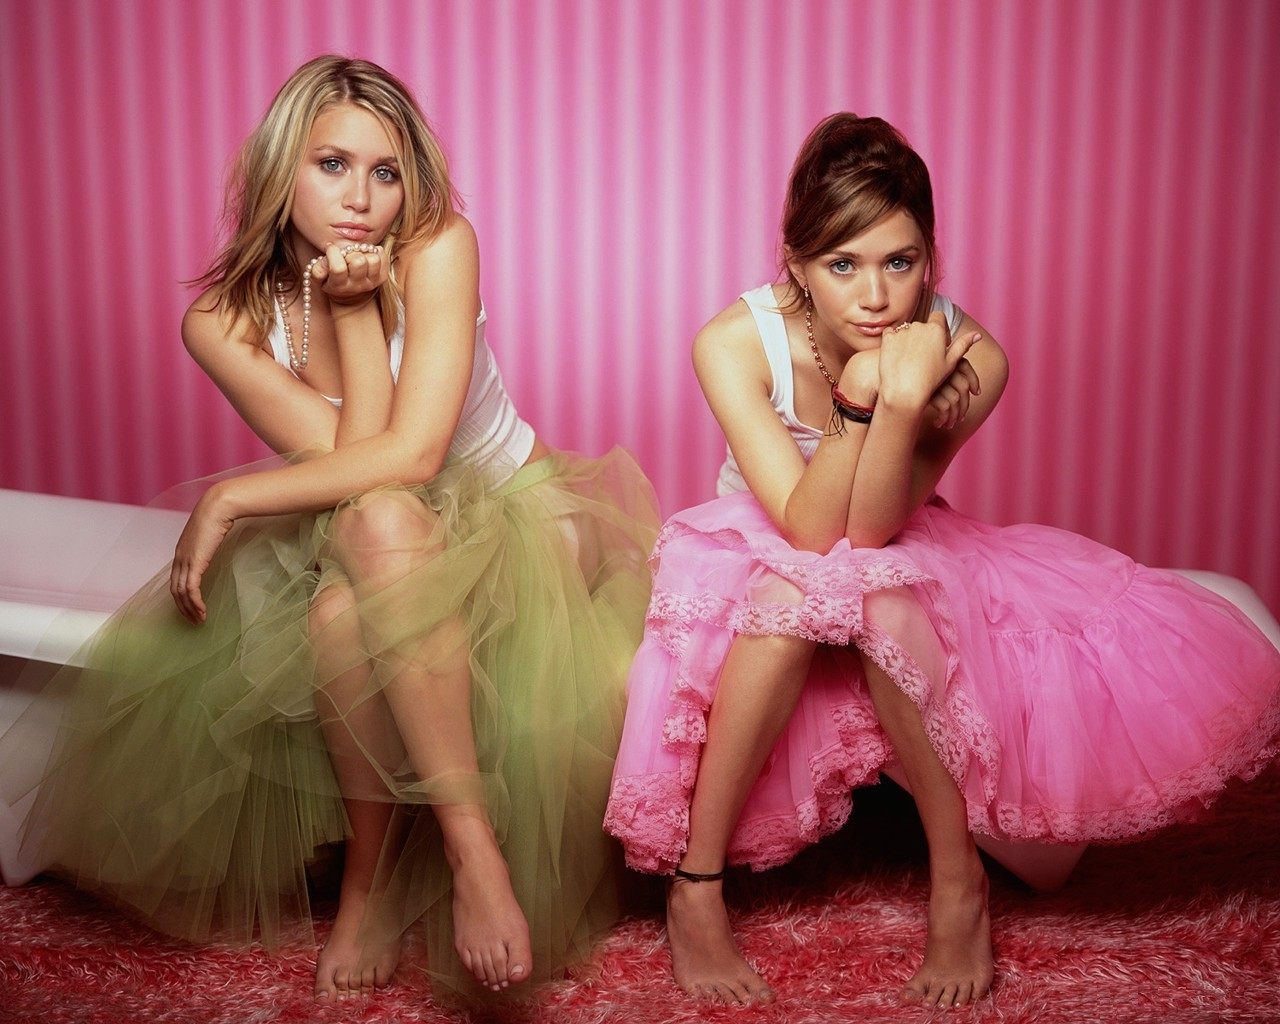 http://2.bp.blogspot.com/-Y_SE4Bek2_o/T8N1eH5w6HI/AAAAAAAAApQ/Dq2vaVO8dy0/s1600/2257-mary-kate-and-ashley-olsen-pictures.jpg